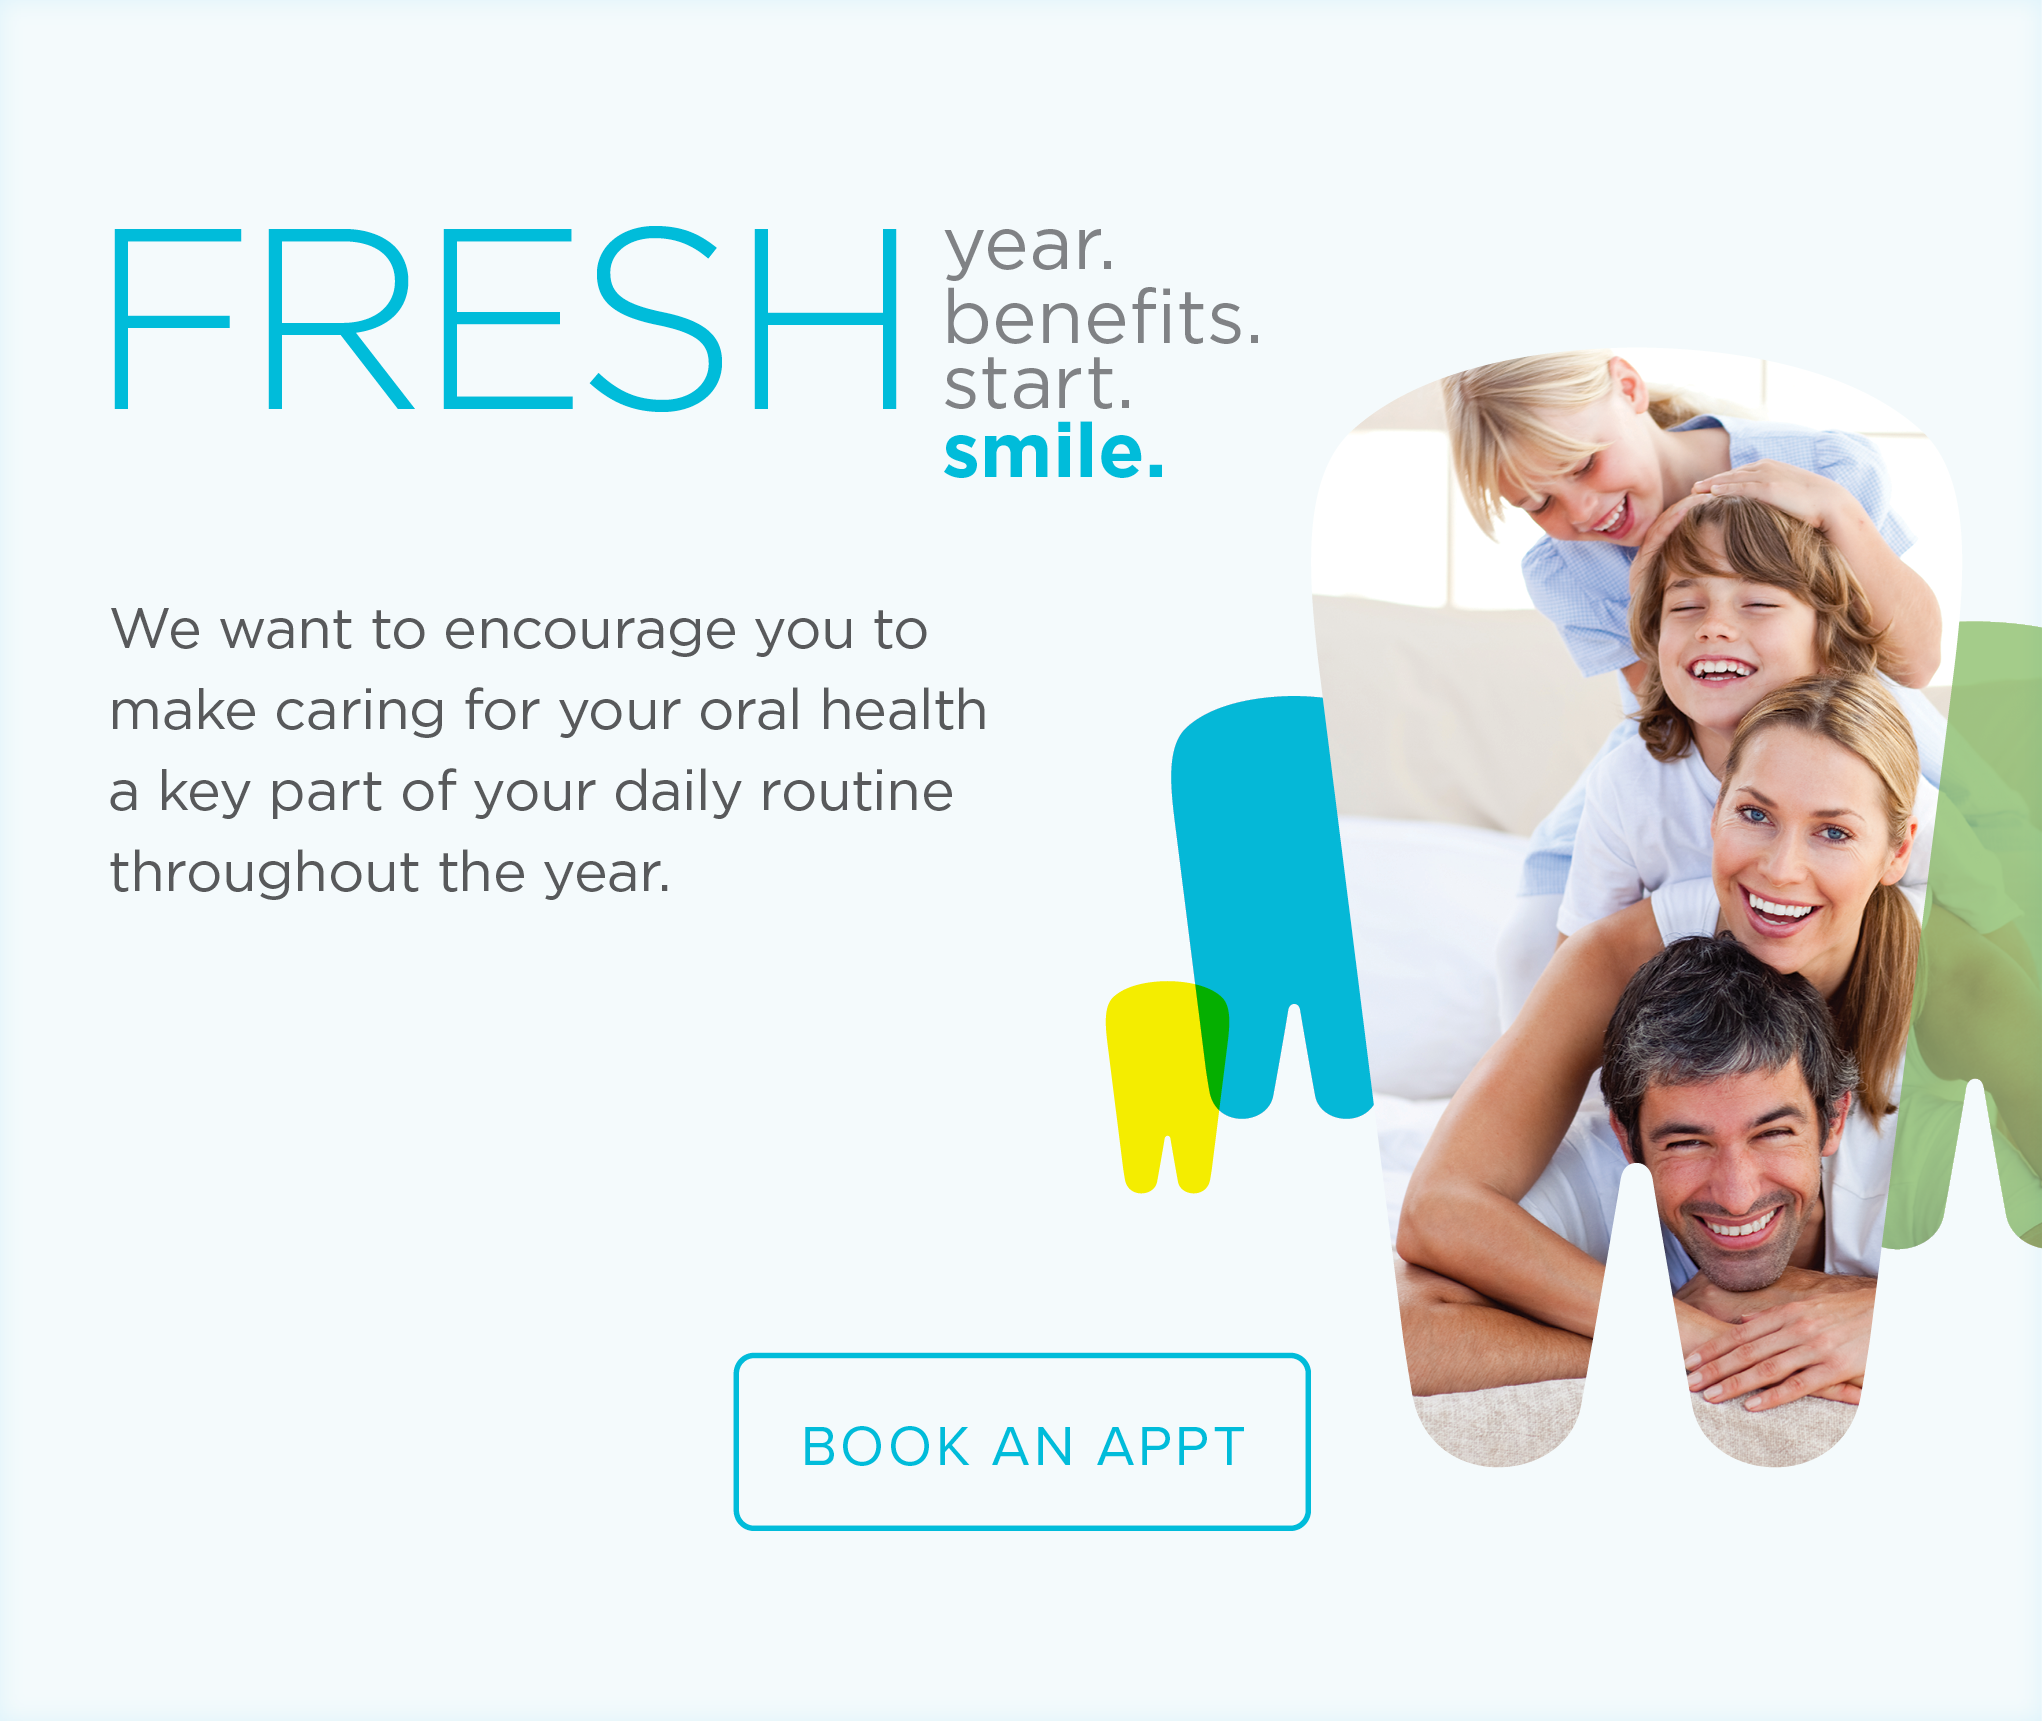 Sparks Marina Dentistry - Make the Most of Your Benefits